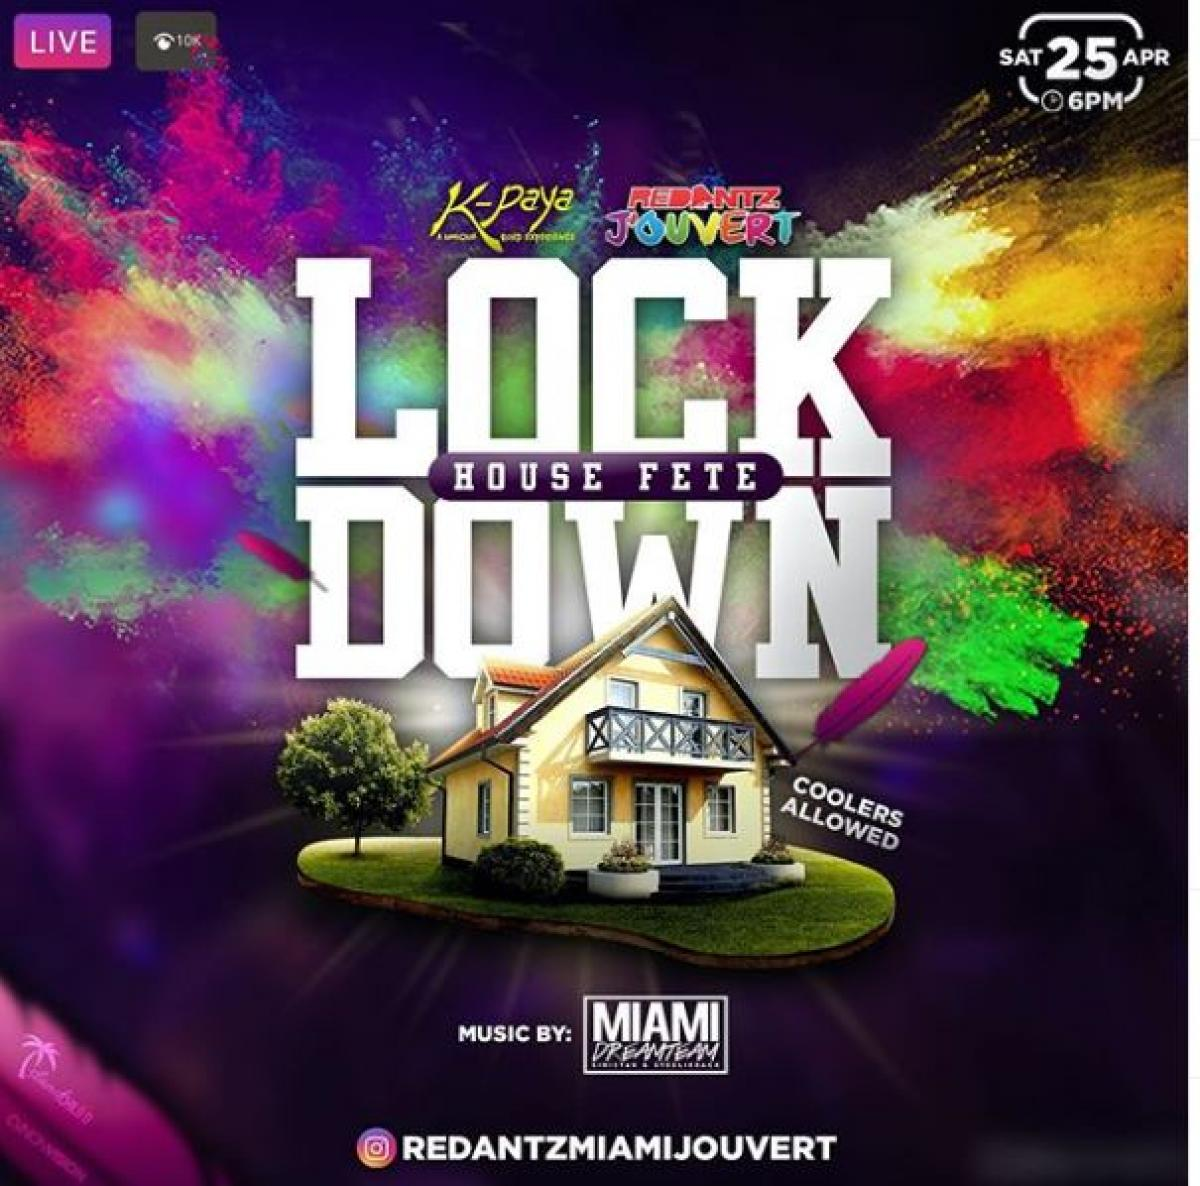 Lockdown House Fete flyer or graphic.